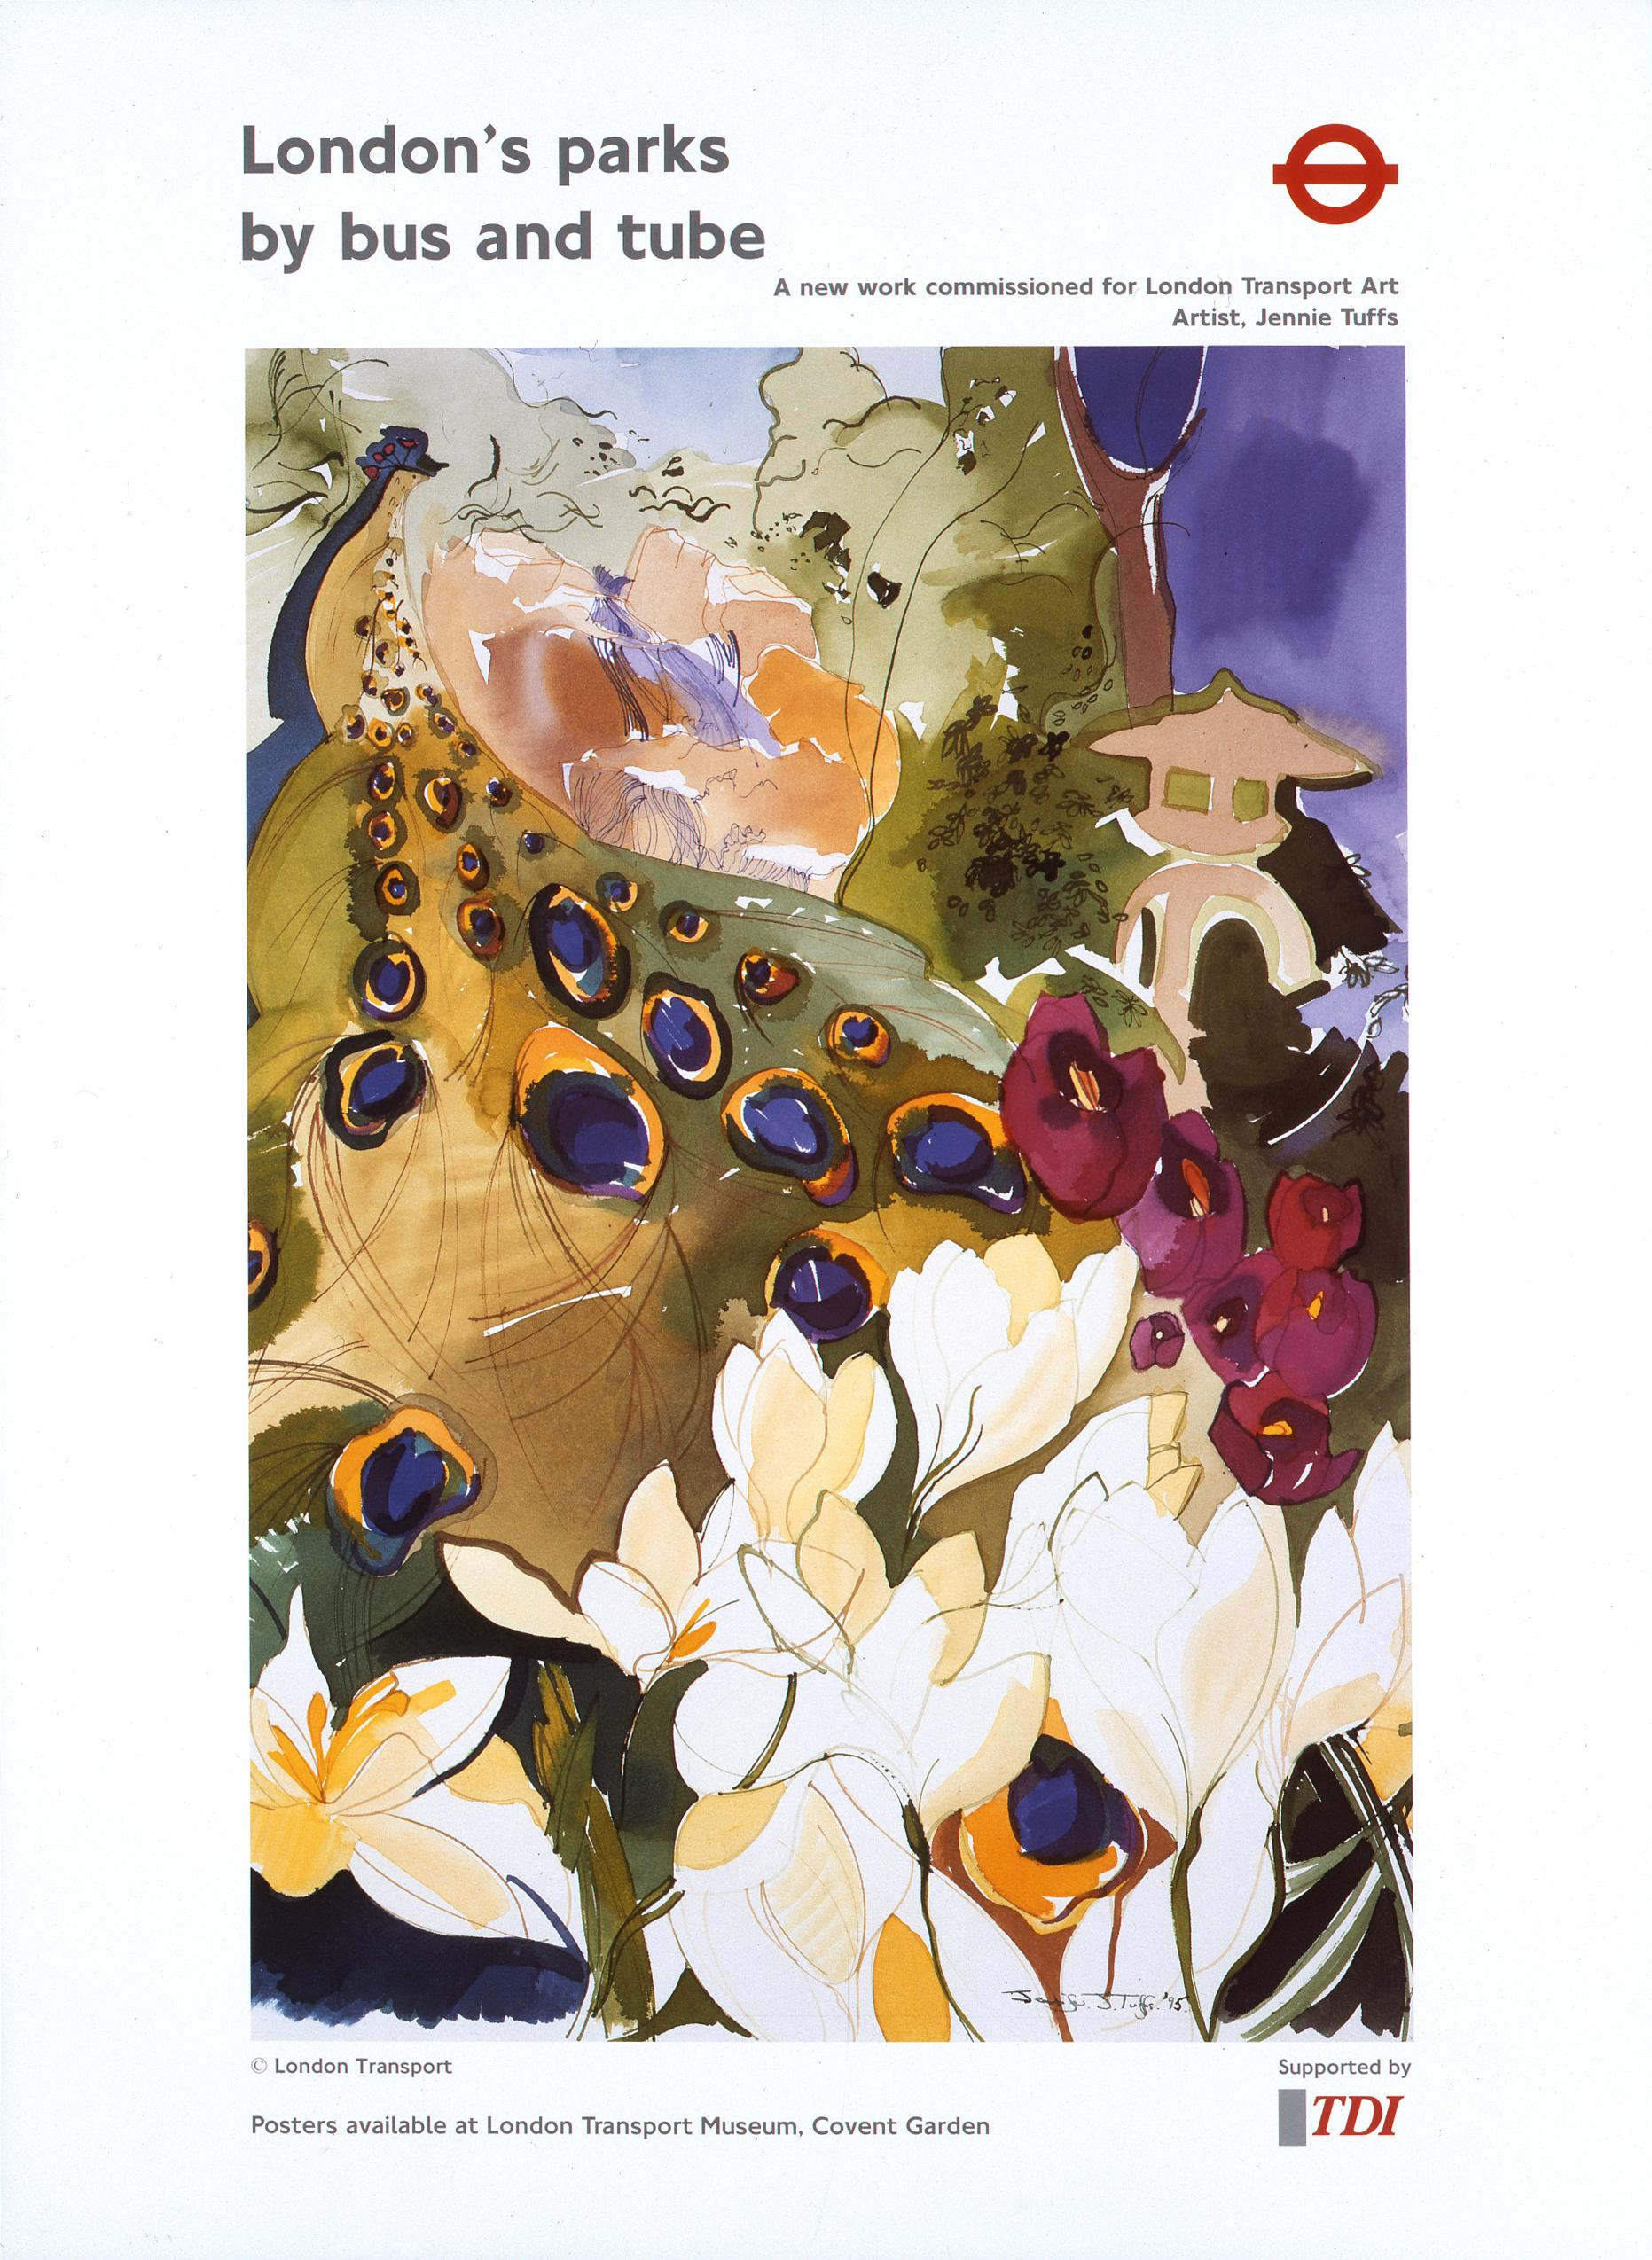 London's garden's by bus and Tube - 2017 - London's gardens by bus and Tube© London Transport Museum collectionReissued as part of the